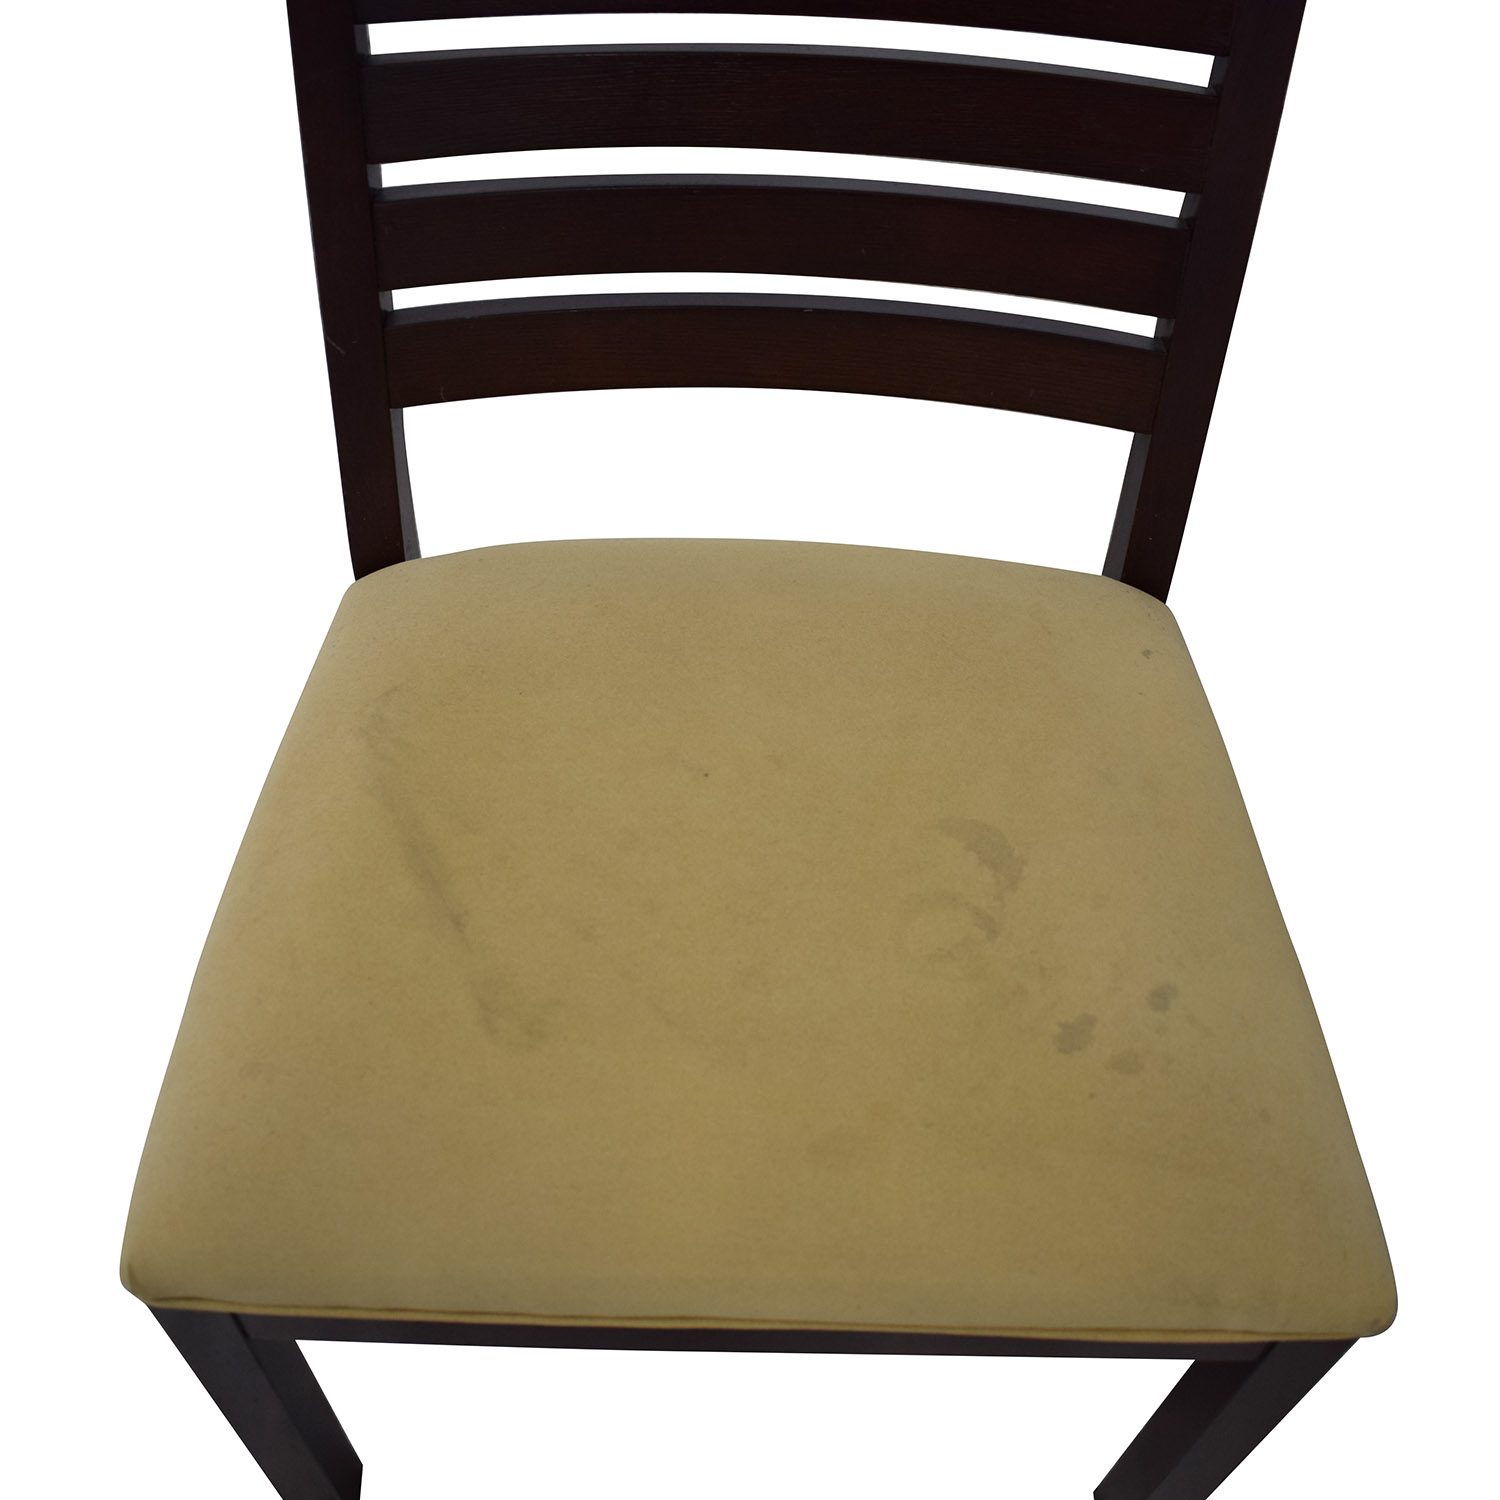 Ethan Allen Ethan Allen Dining Chairs for sale